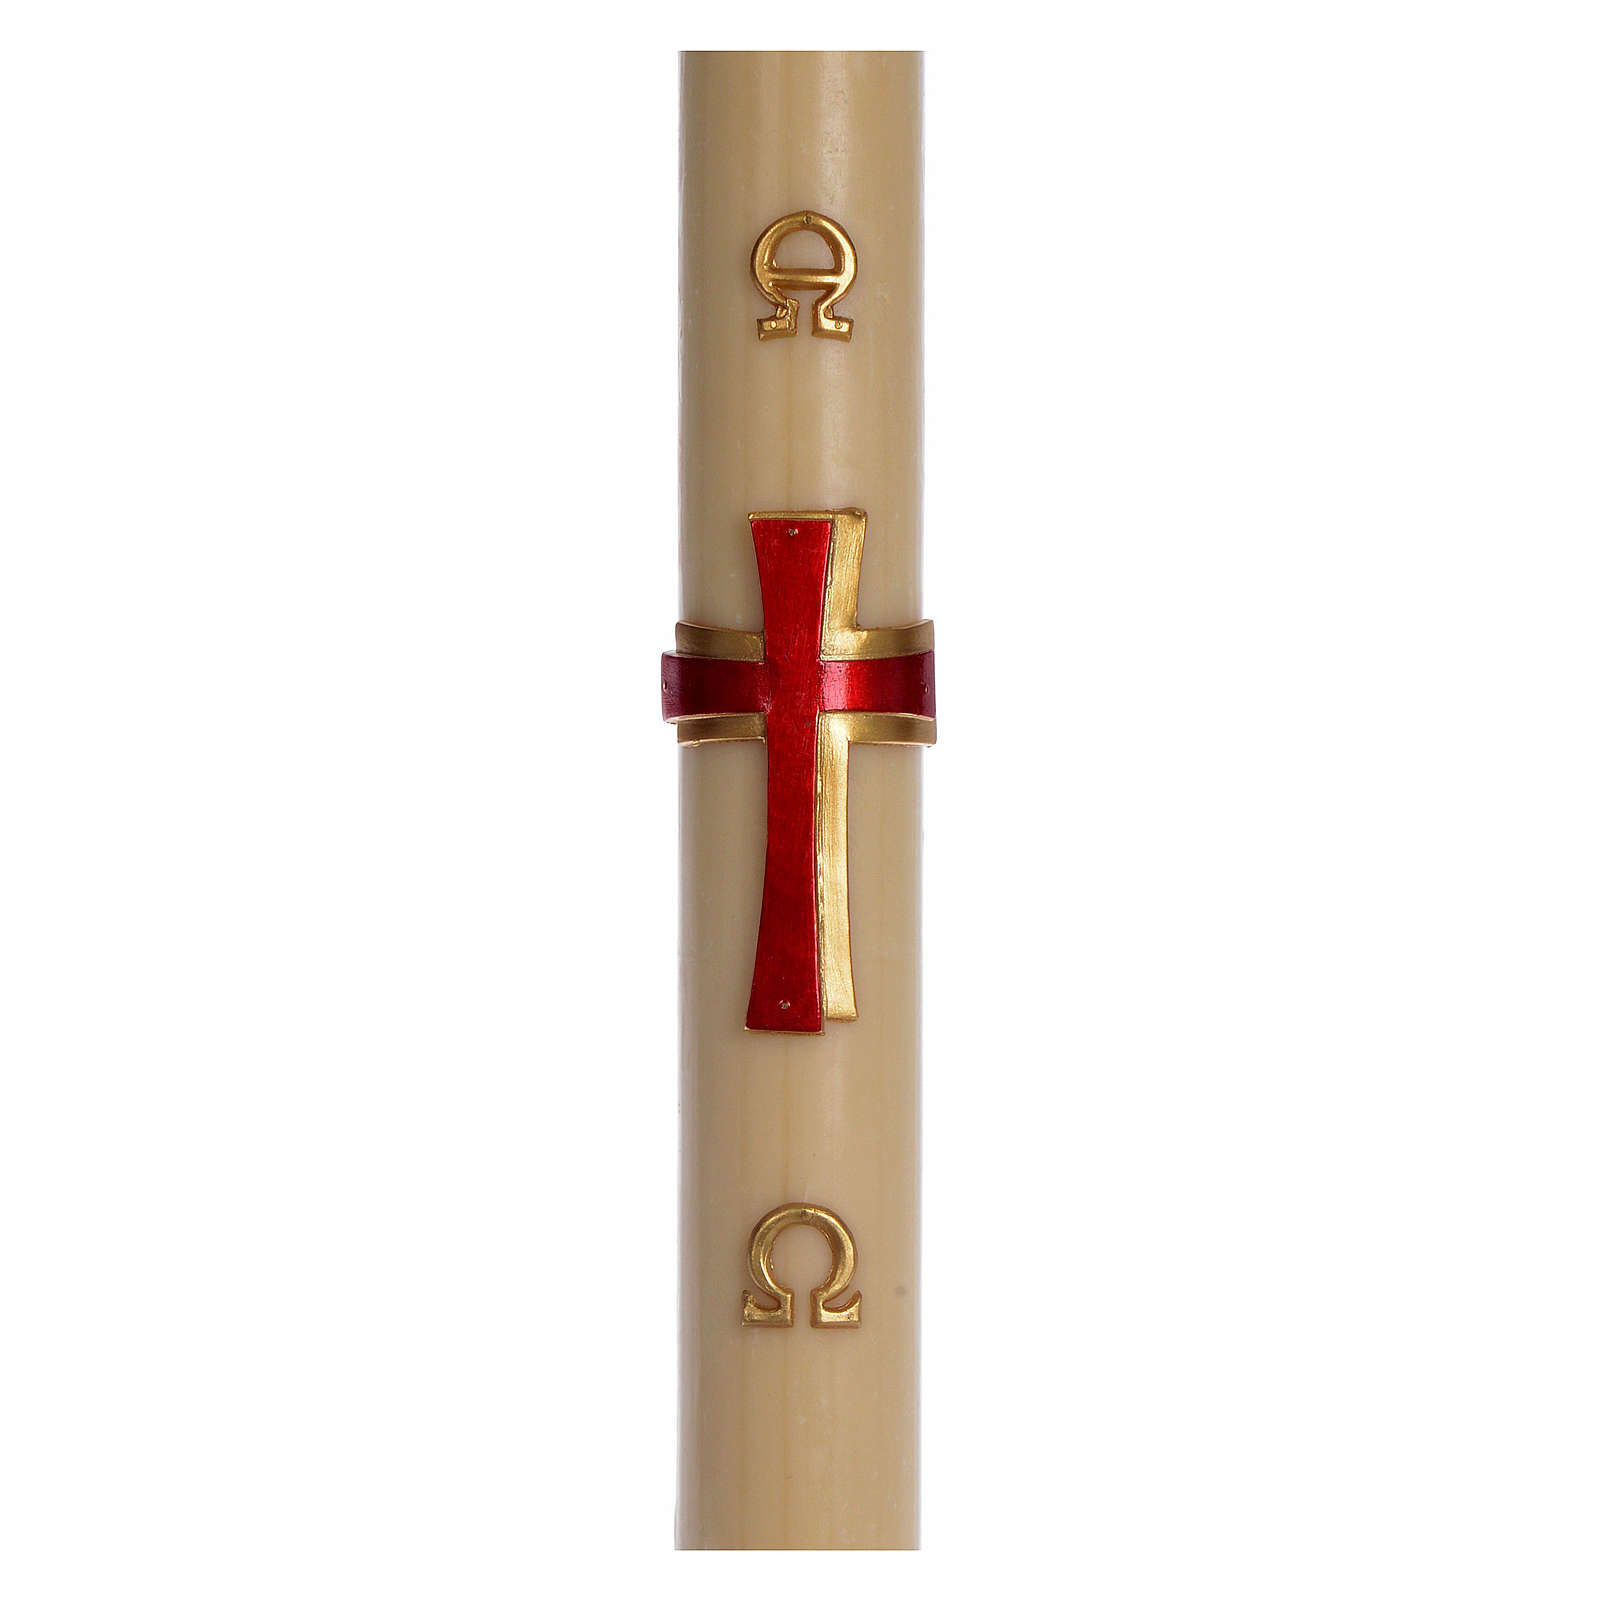 Paschal candle in beeswax with red cross in relief 8x120cm 3